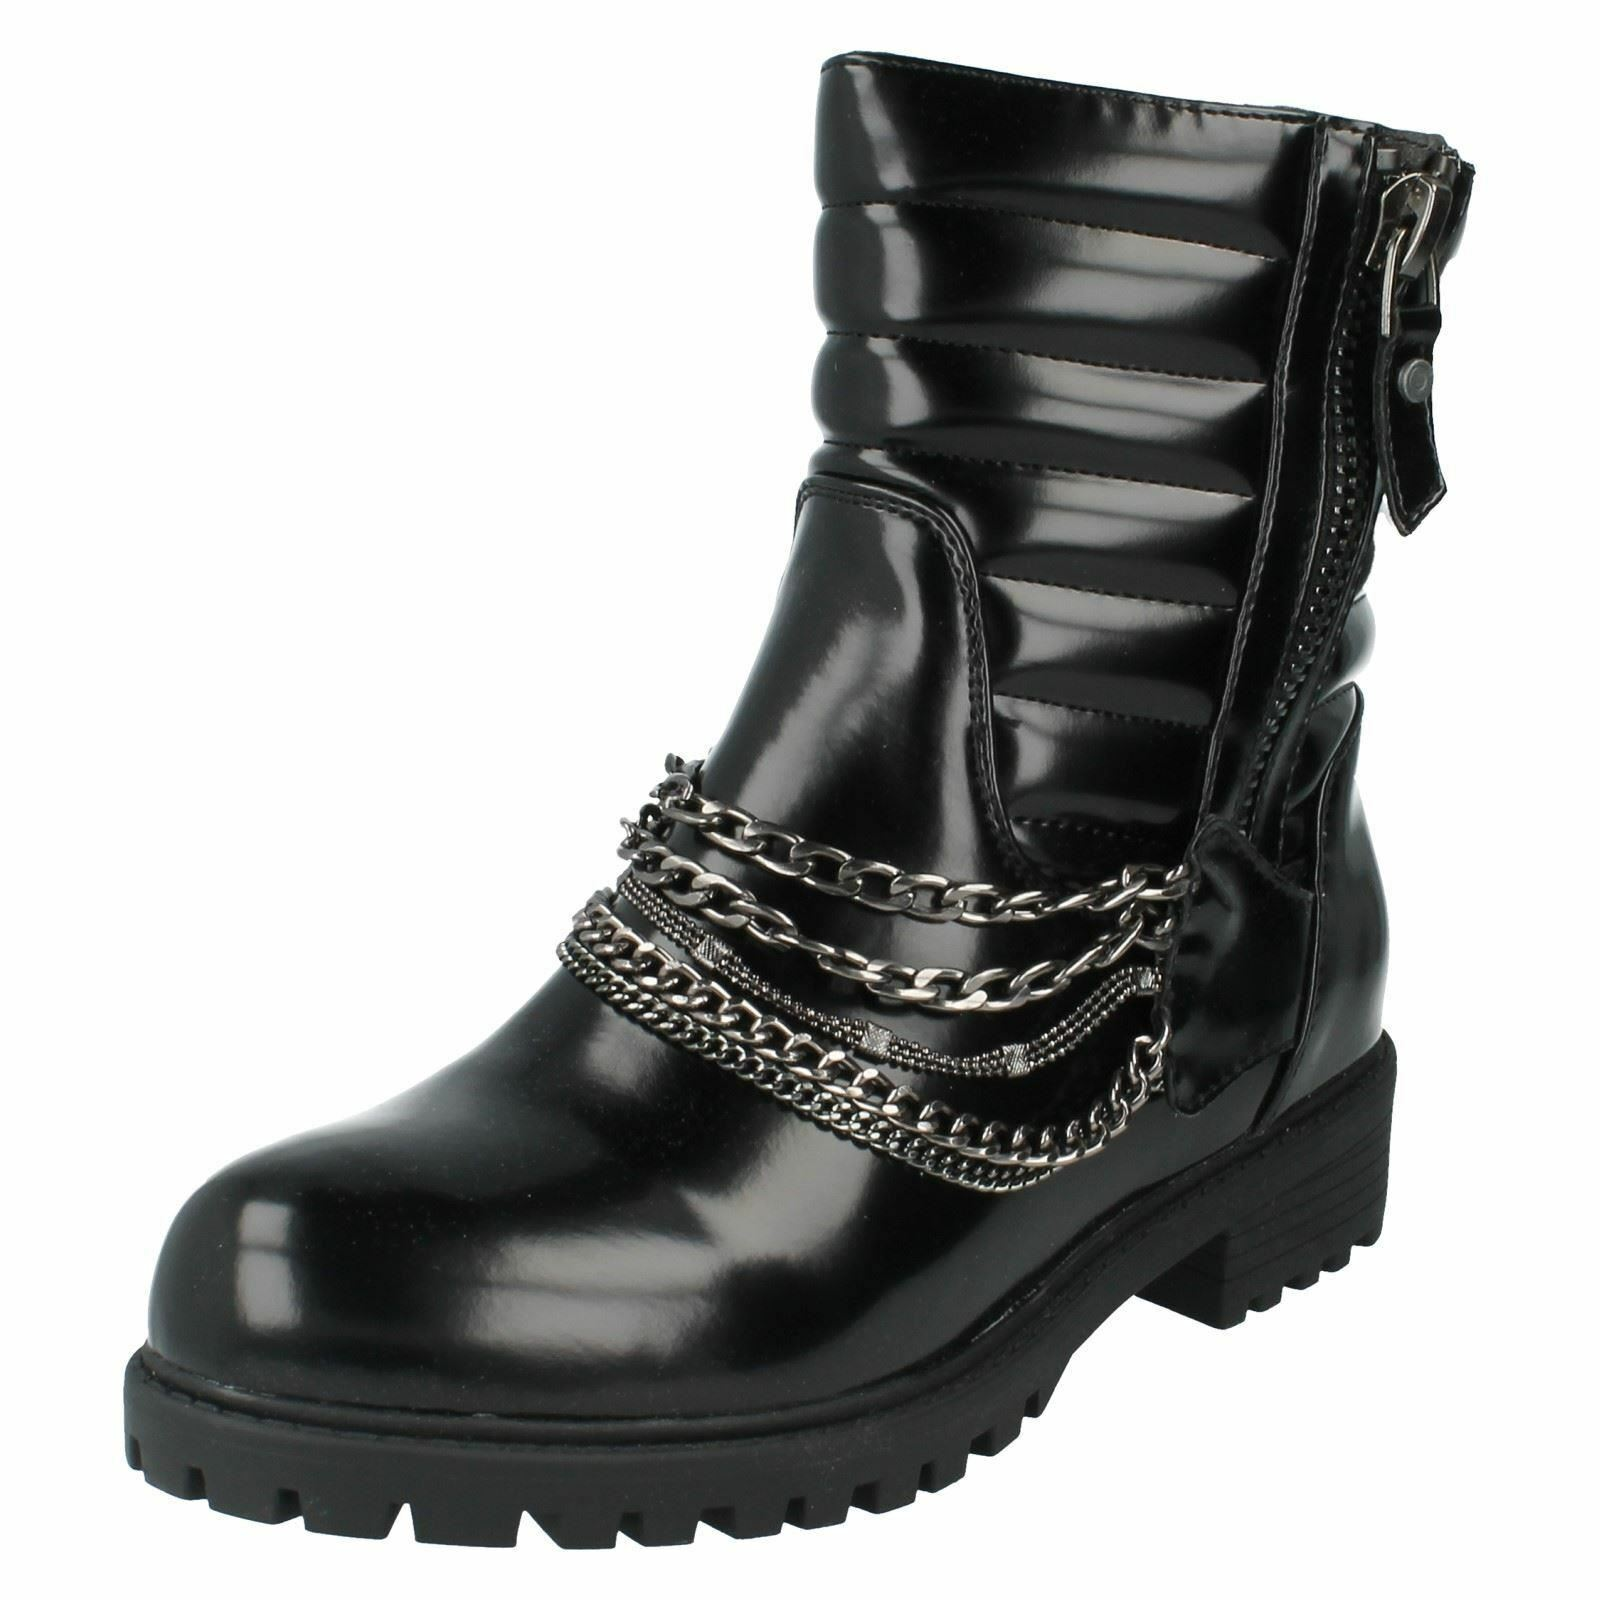 SALE Ladies F50327S black high shine synthetic ankle boots by Spot On £19.99